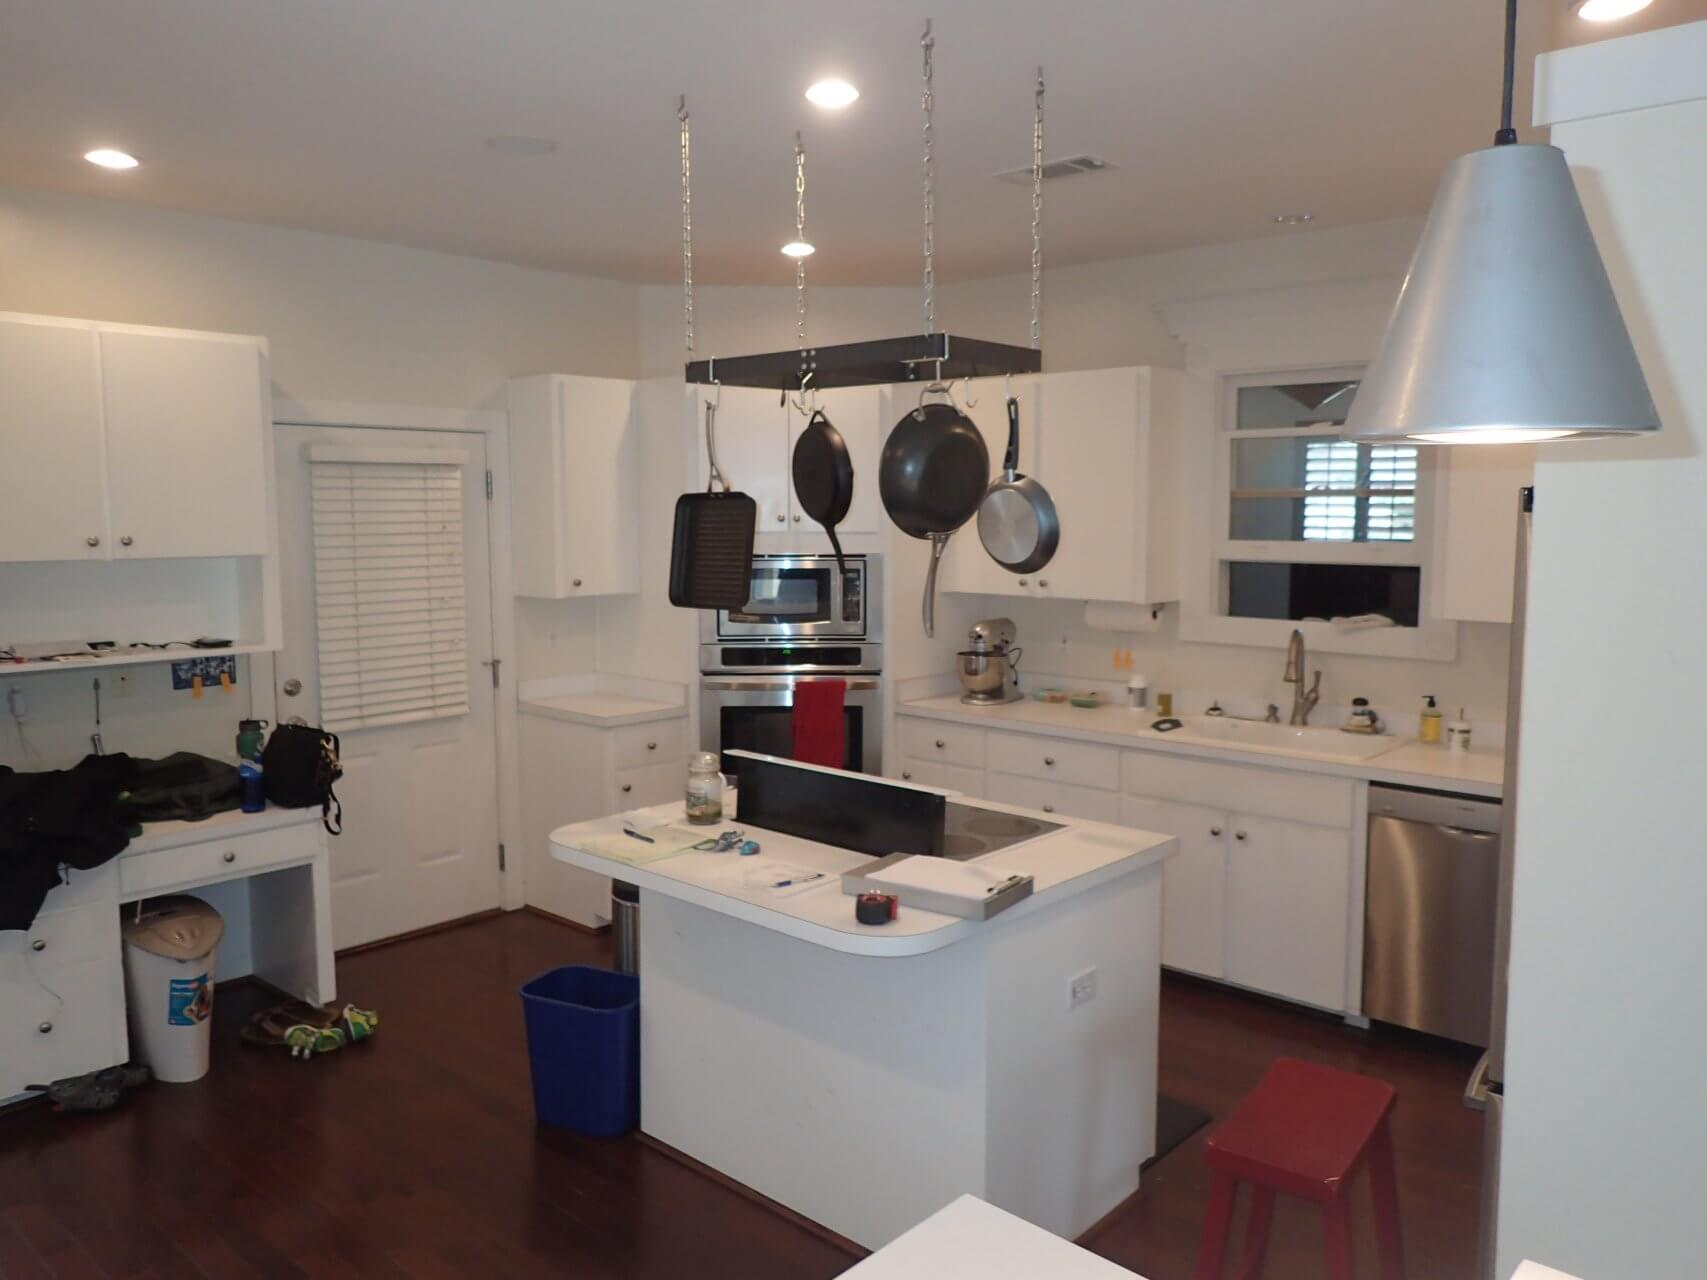 Before: The kitchen featured white cabinets from the ceiling to the floor before Cabinet Depot did renovations.